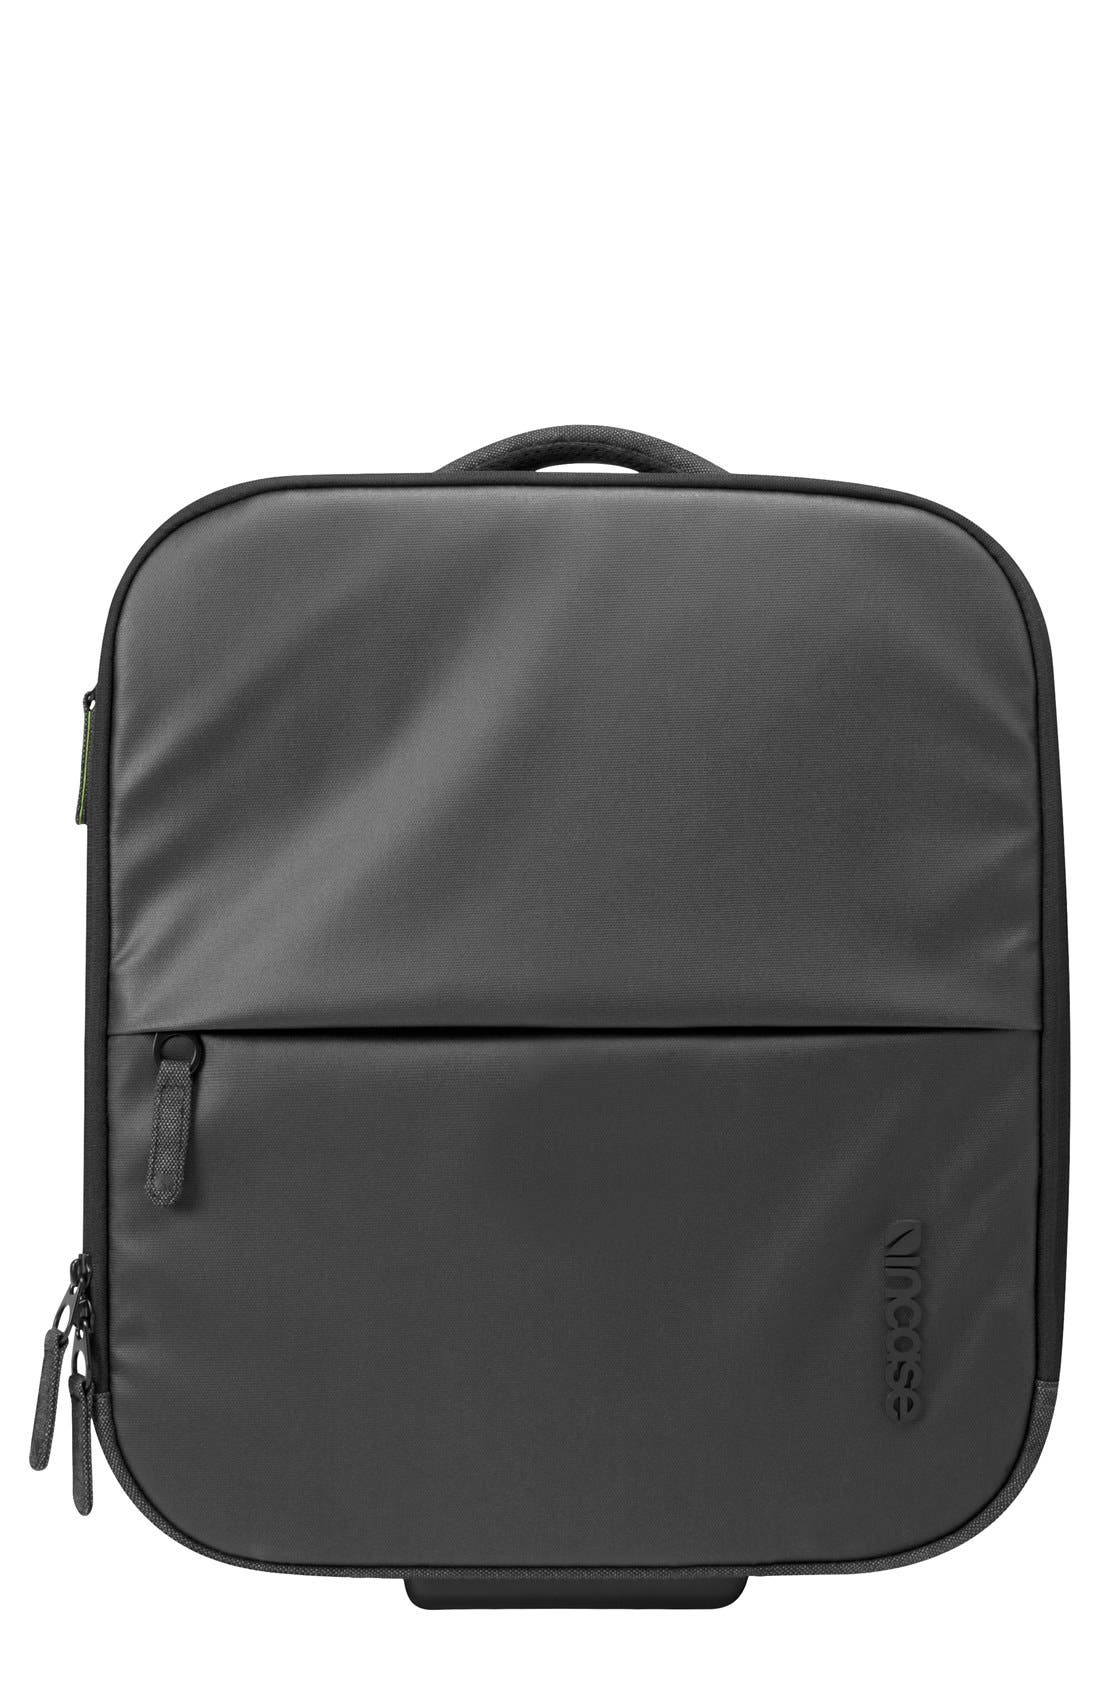 EO Wheeled Briefcase,                         Main,                         color, Black